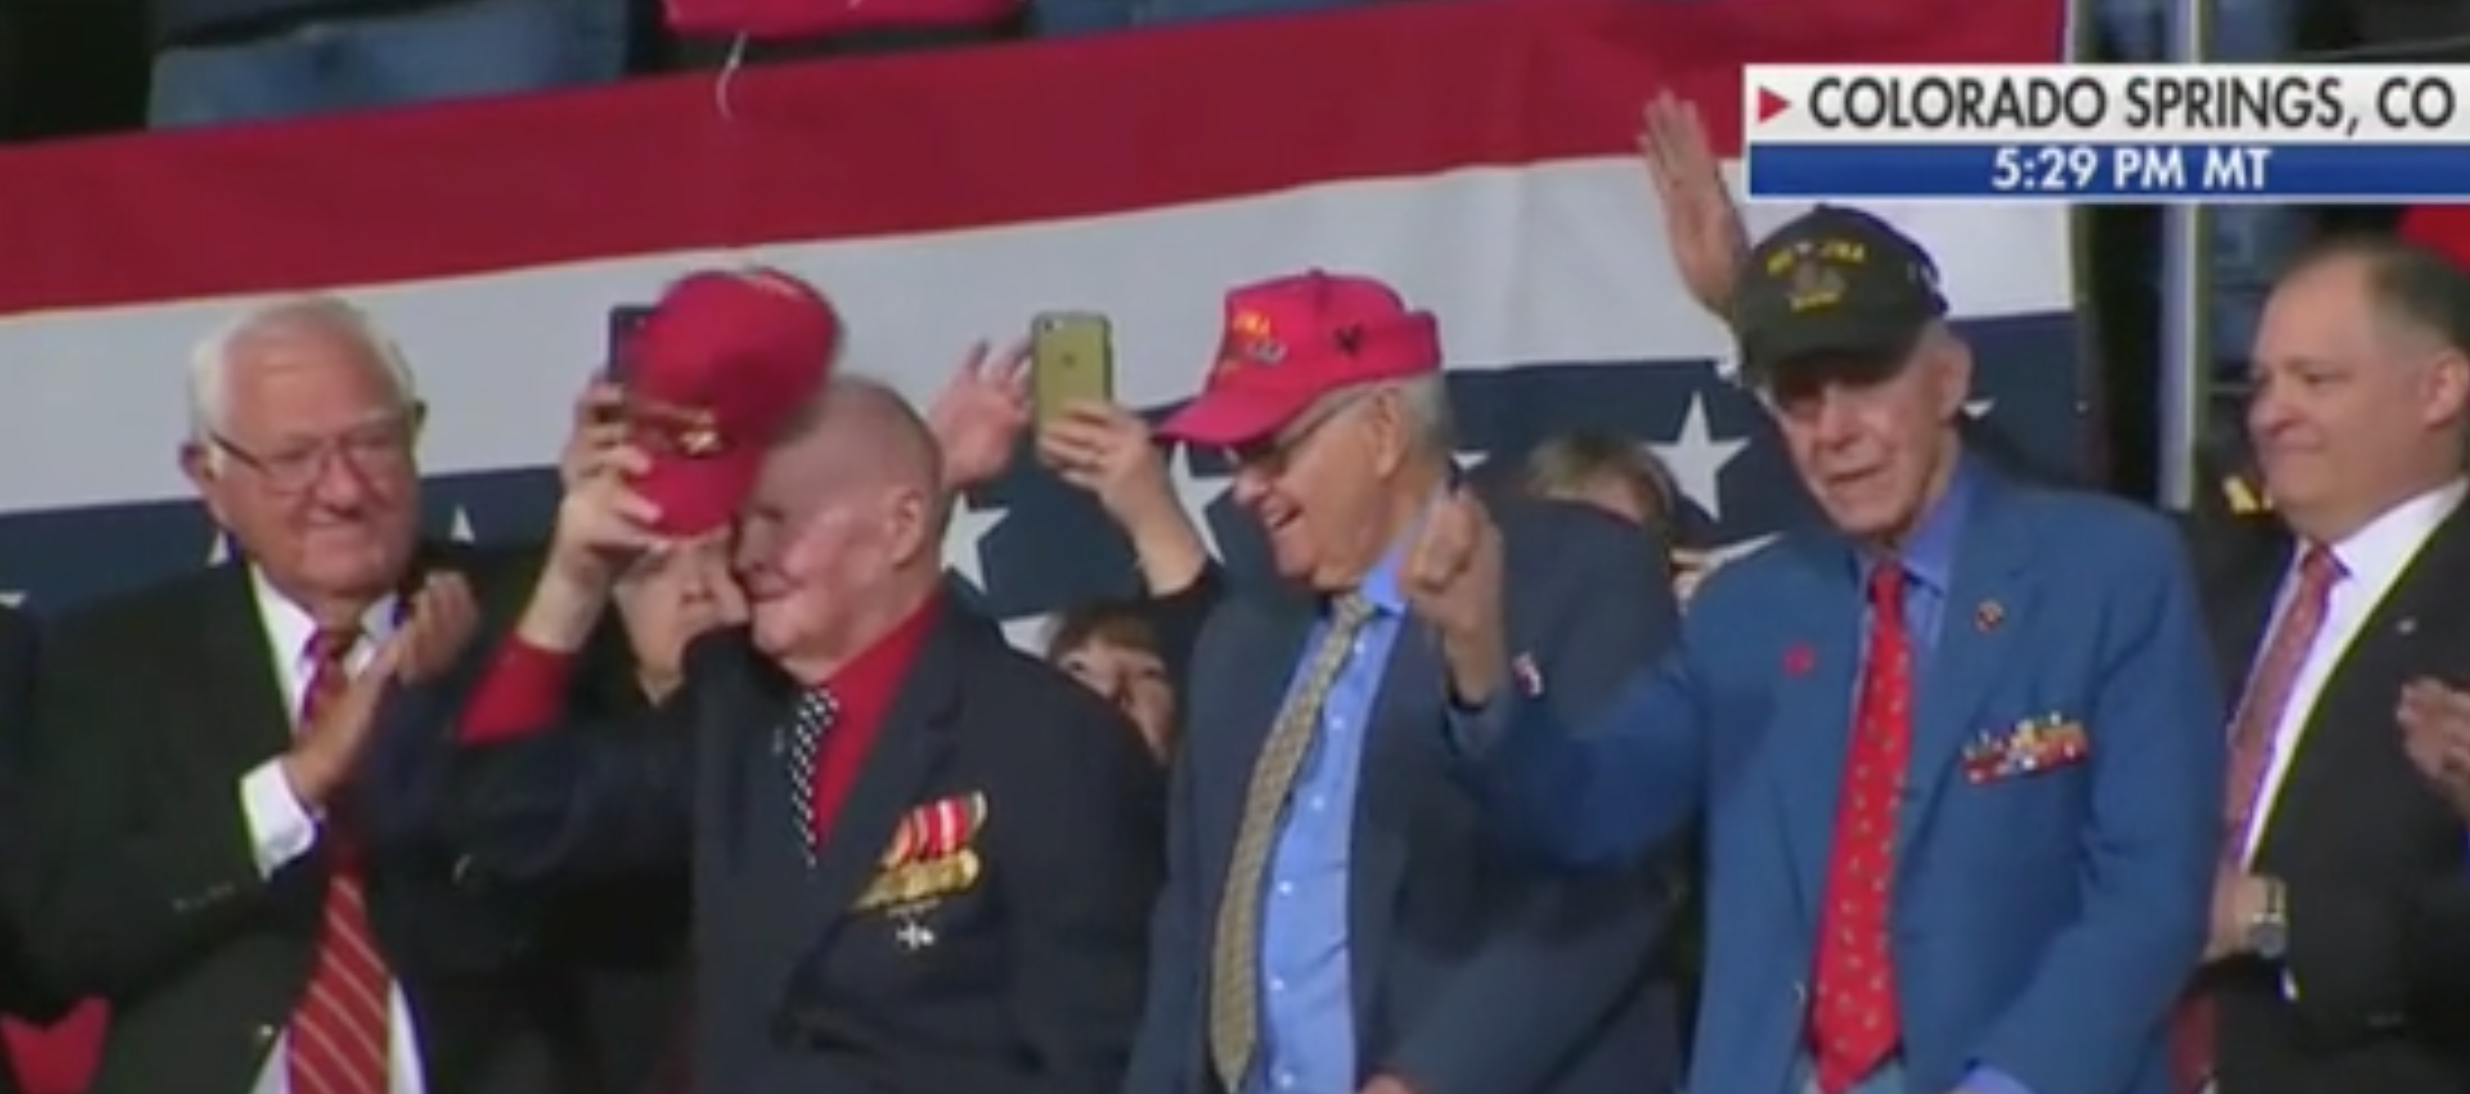 Iwo Jima veterans stand at Trump rally in Colorado. Screen Shot/Fox News